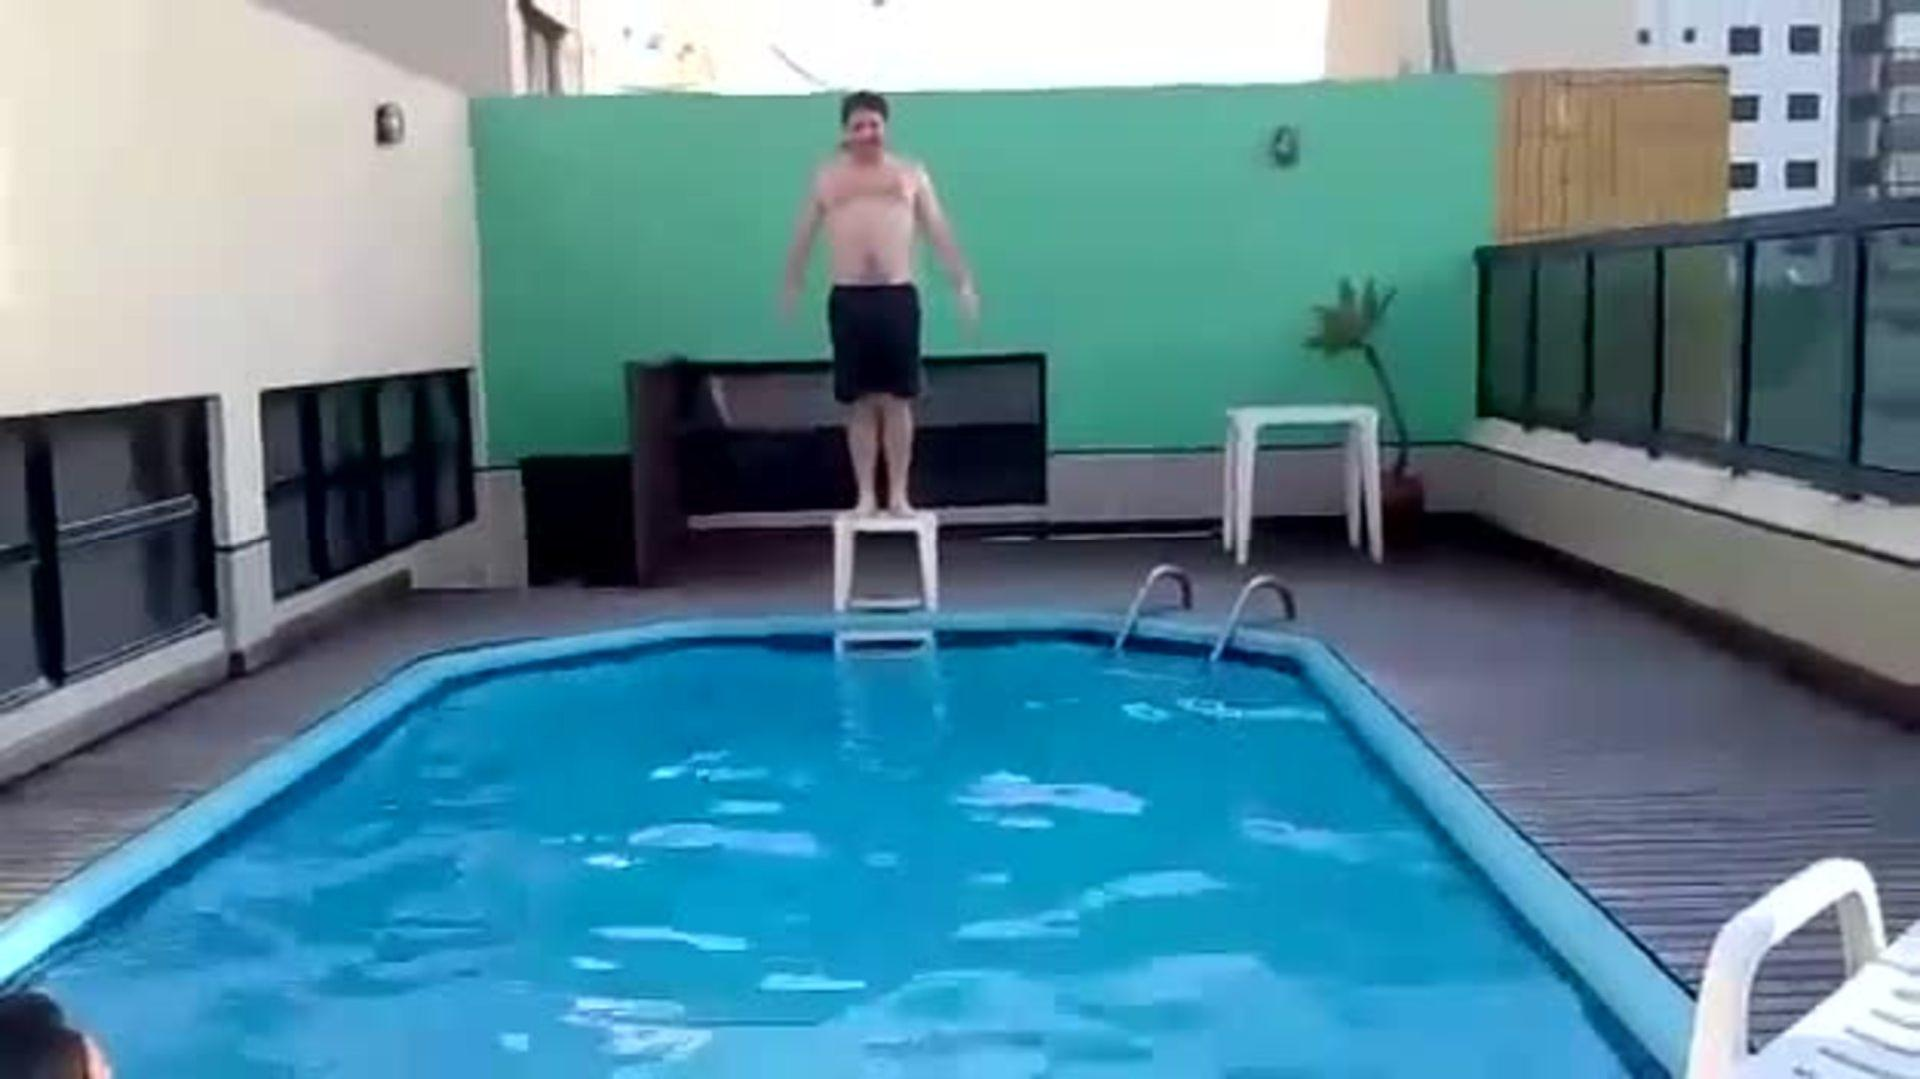 Guy Tries Jumping off Makeshift Diving Board | Jukin Media Inc